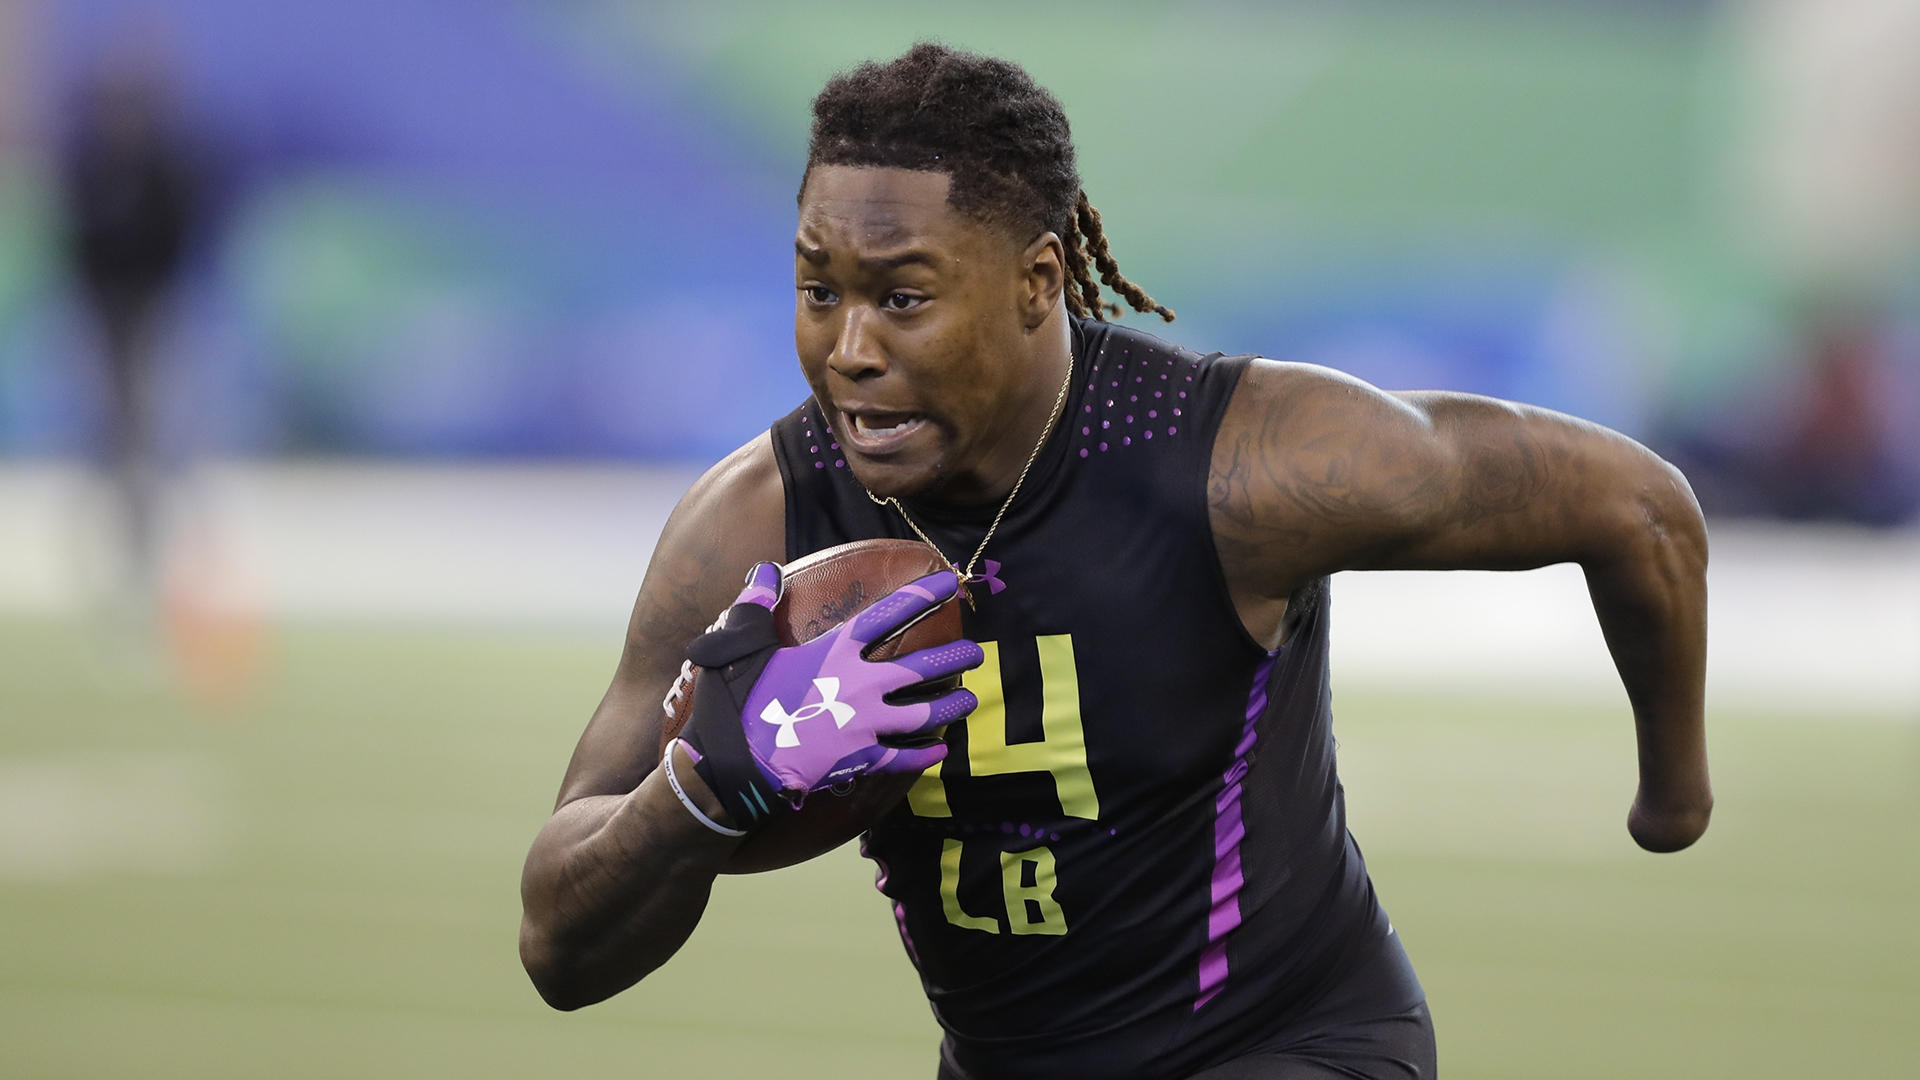 Shaquem Griffin Football Player With One Hand Looks To Make